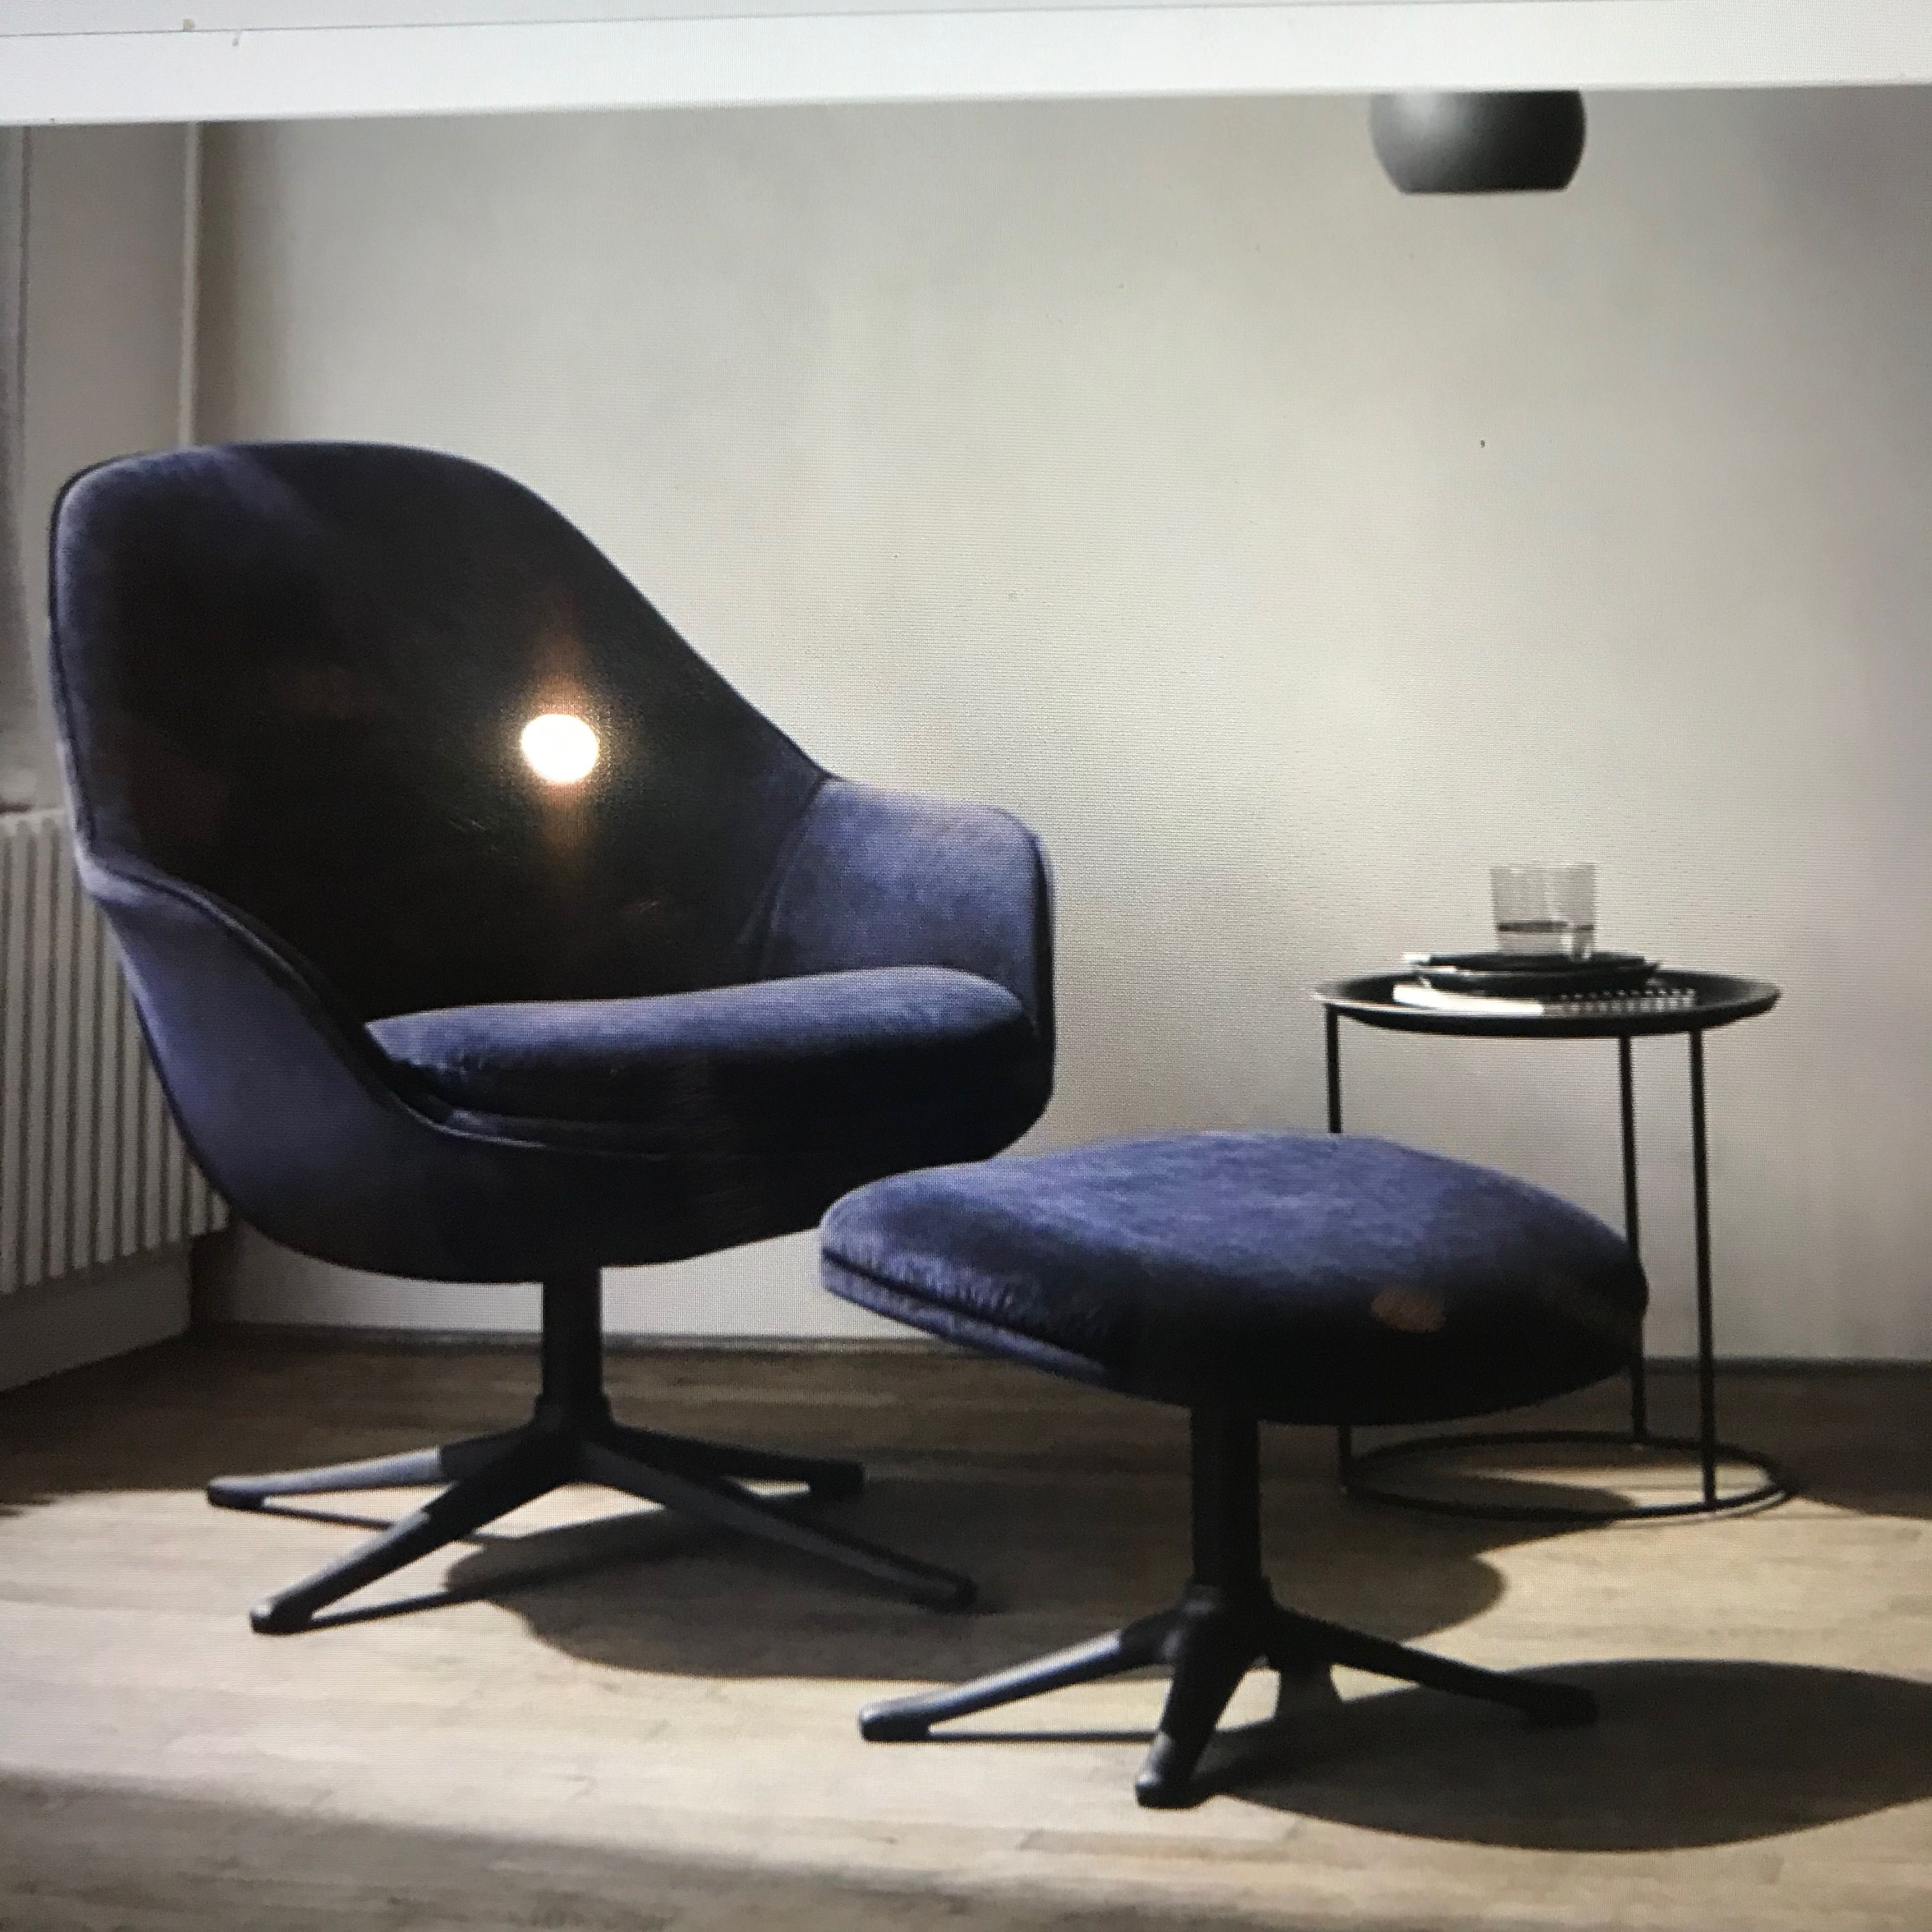 Surprising The Adelaide Chair With Footstool From Bo Concept This Is Machost Co Dining Chair Design Ideas Machostcouk